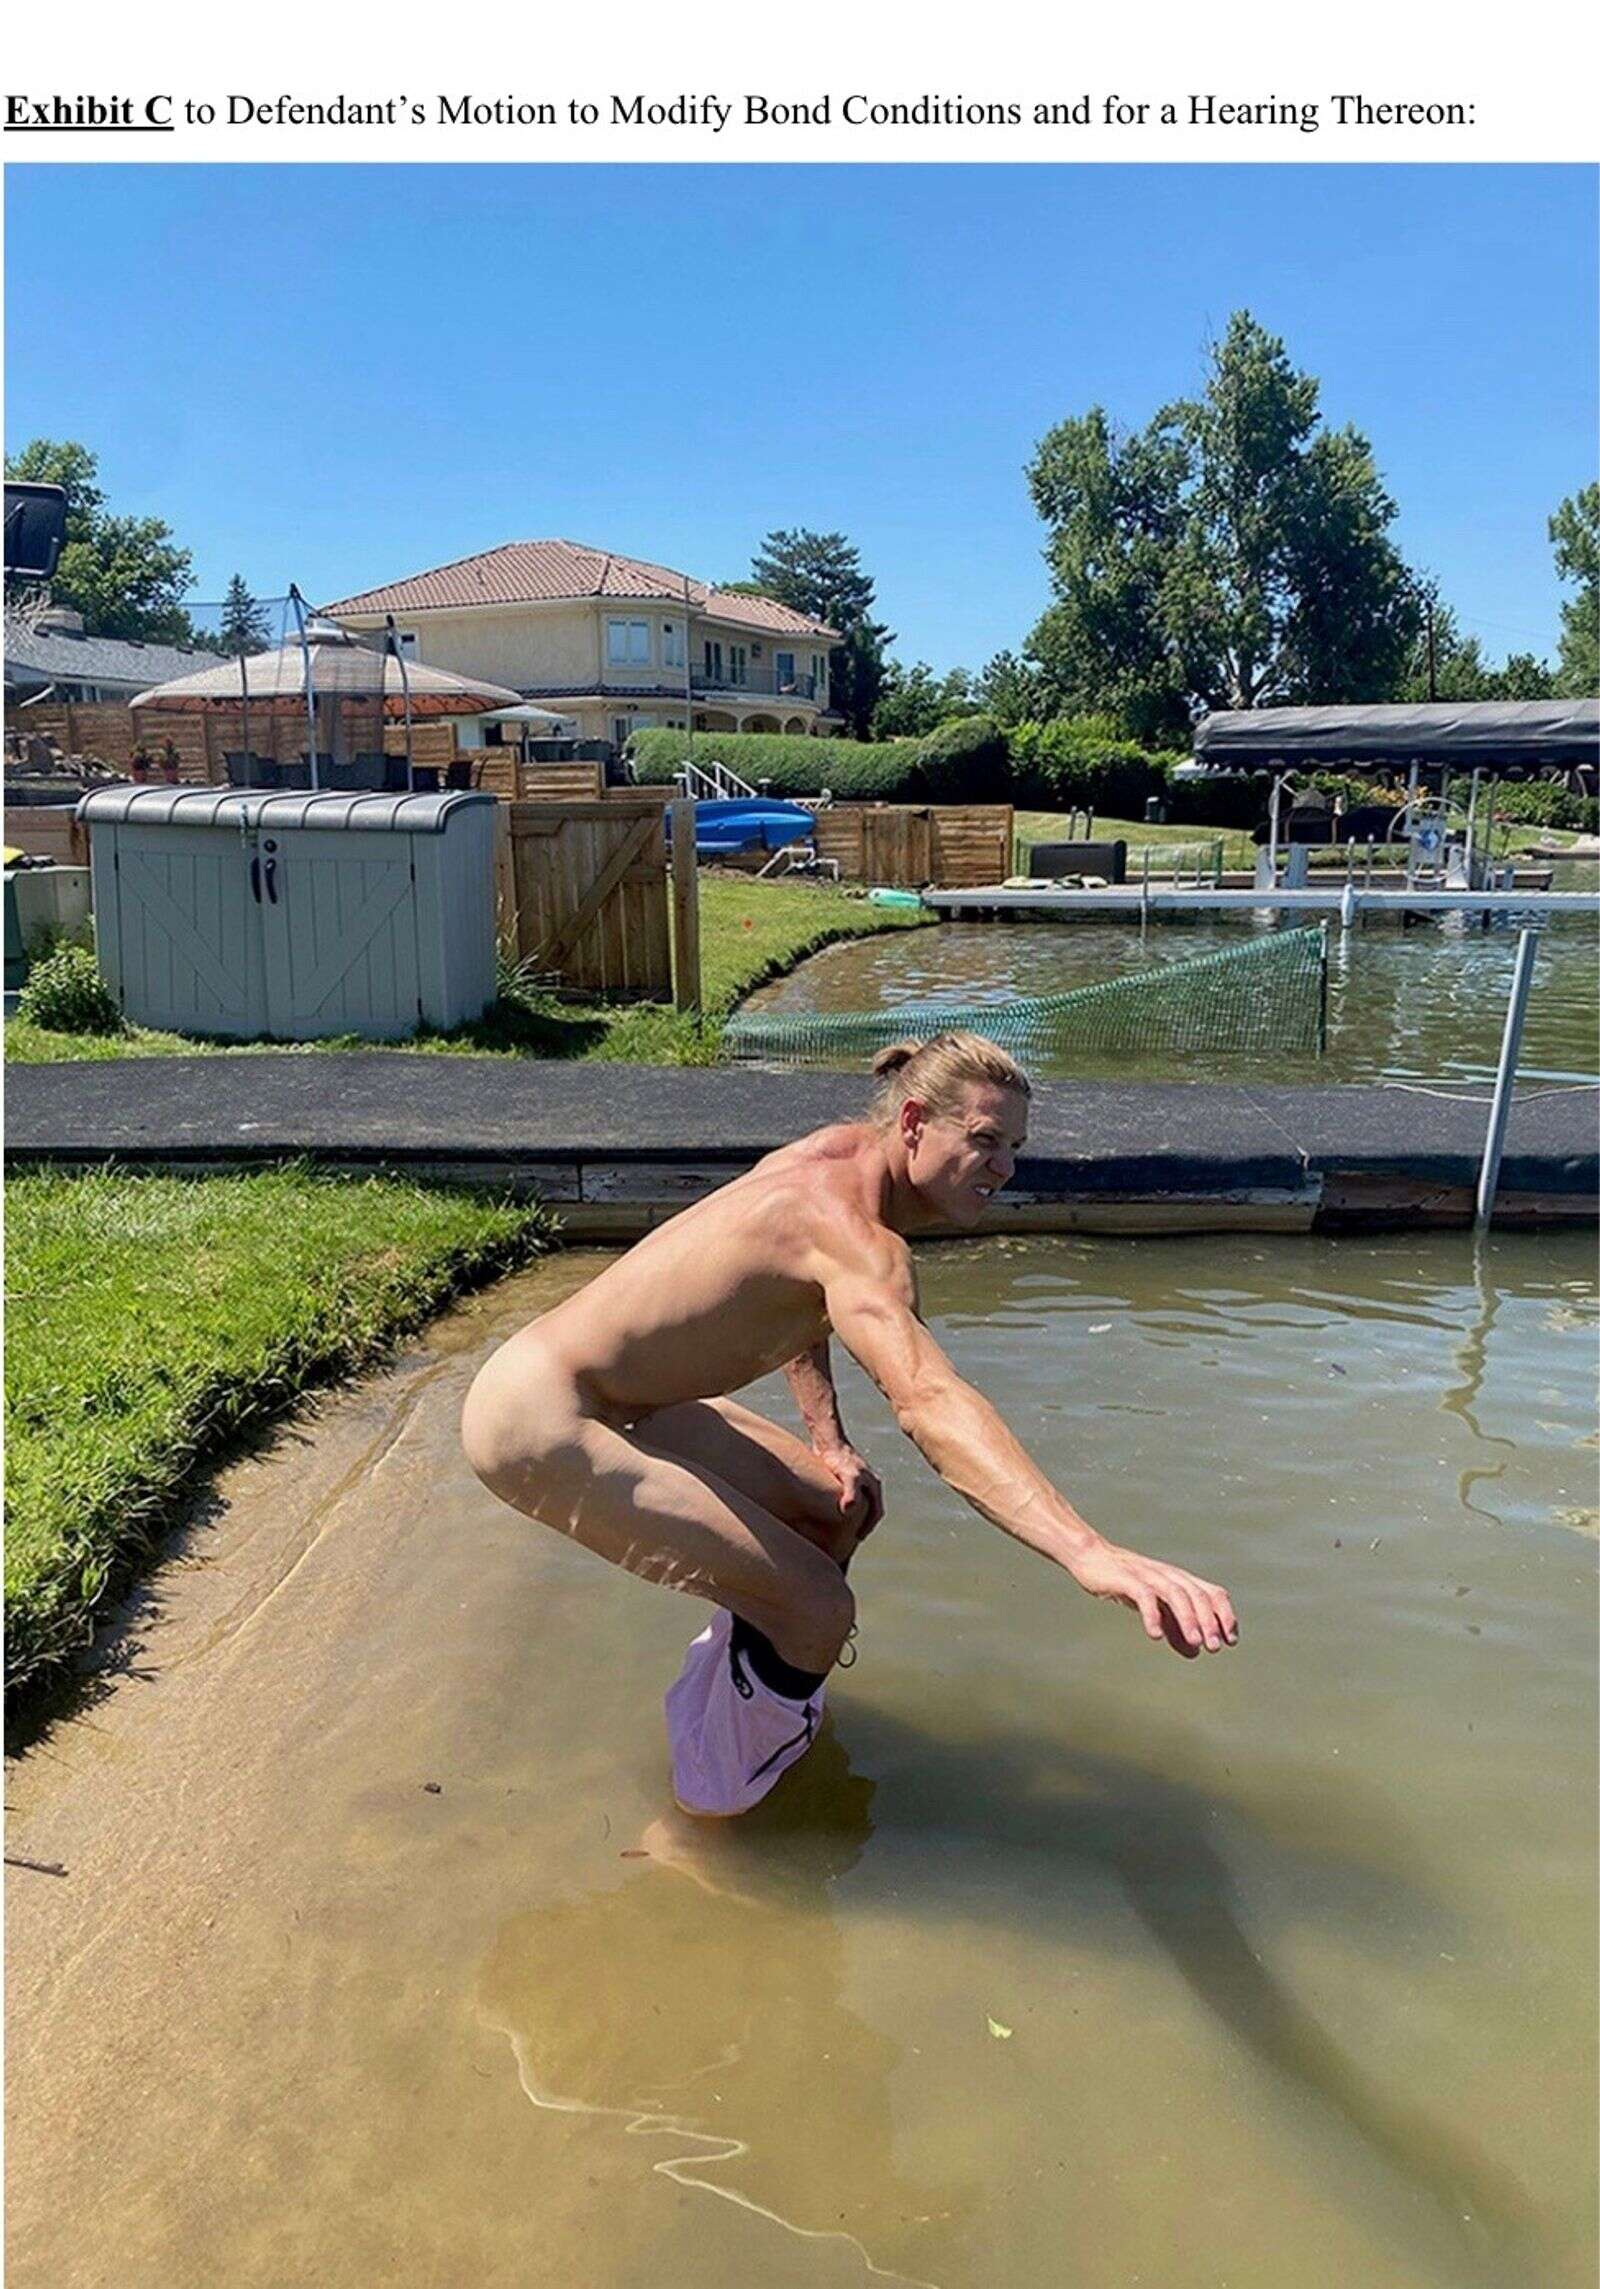 Exhibit C is a photo of Lesh squatting in an unnamed suburban lake or pond.